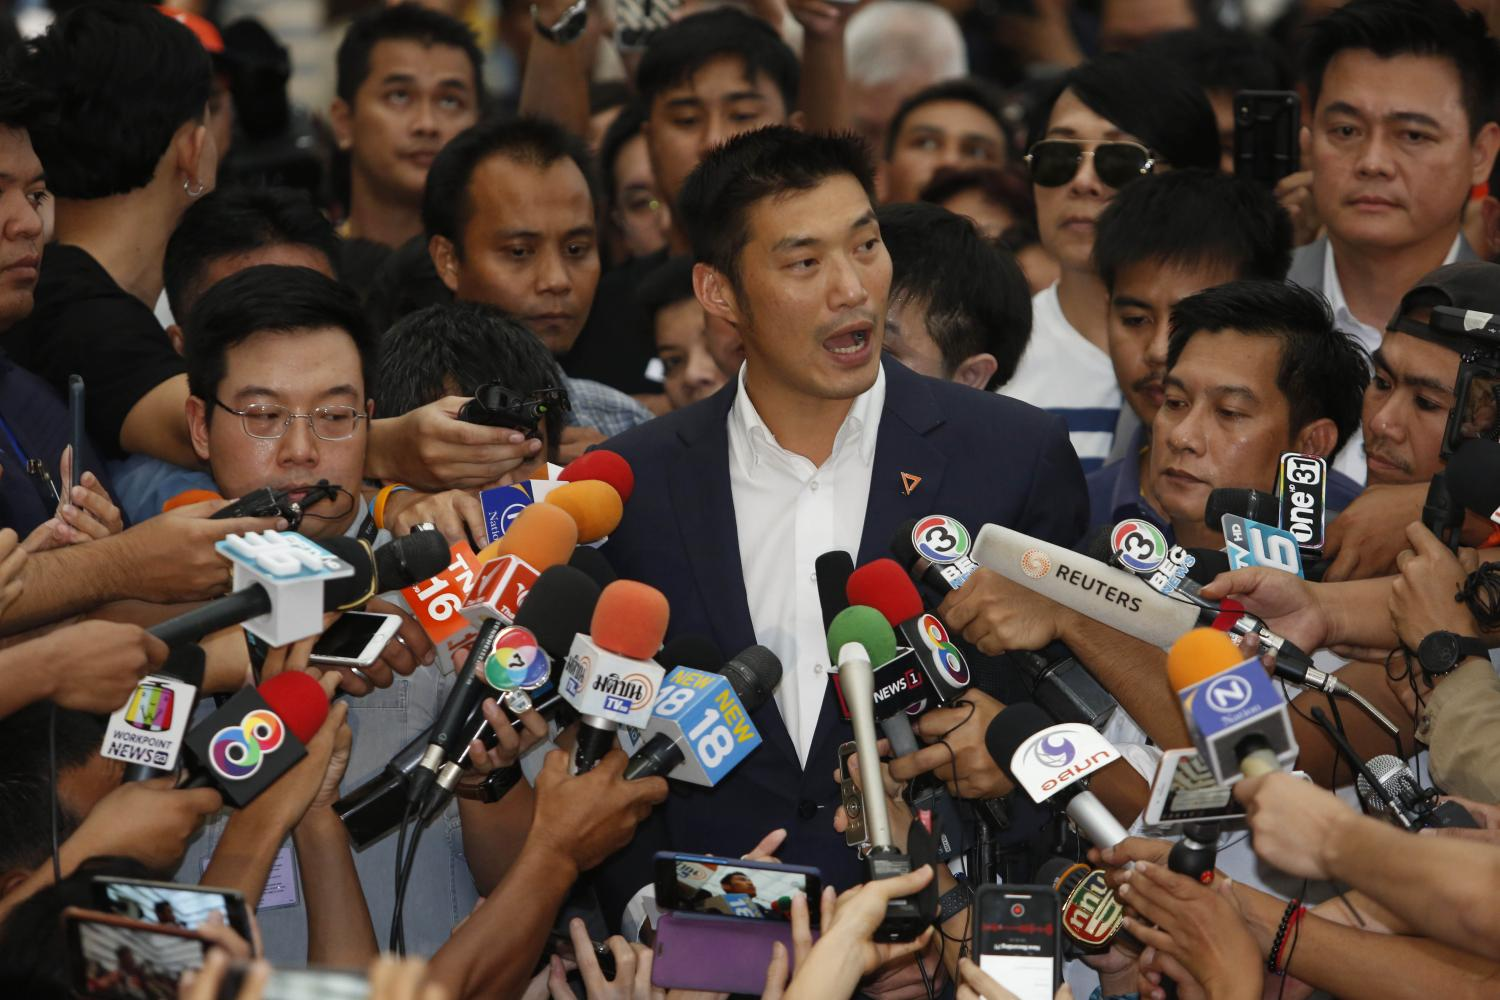 Future Forward Party leader Thanathorn Juangroongruangkit talks to the media on Wednesday after the Constitutional Court's ruling on the media shareholding case against him.PATTARAPONG CHATPATTARASILL